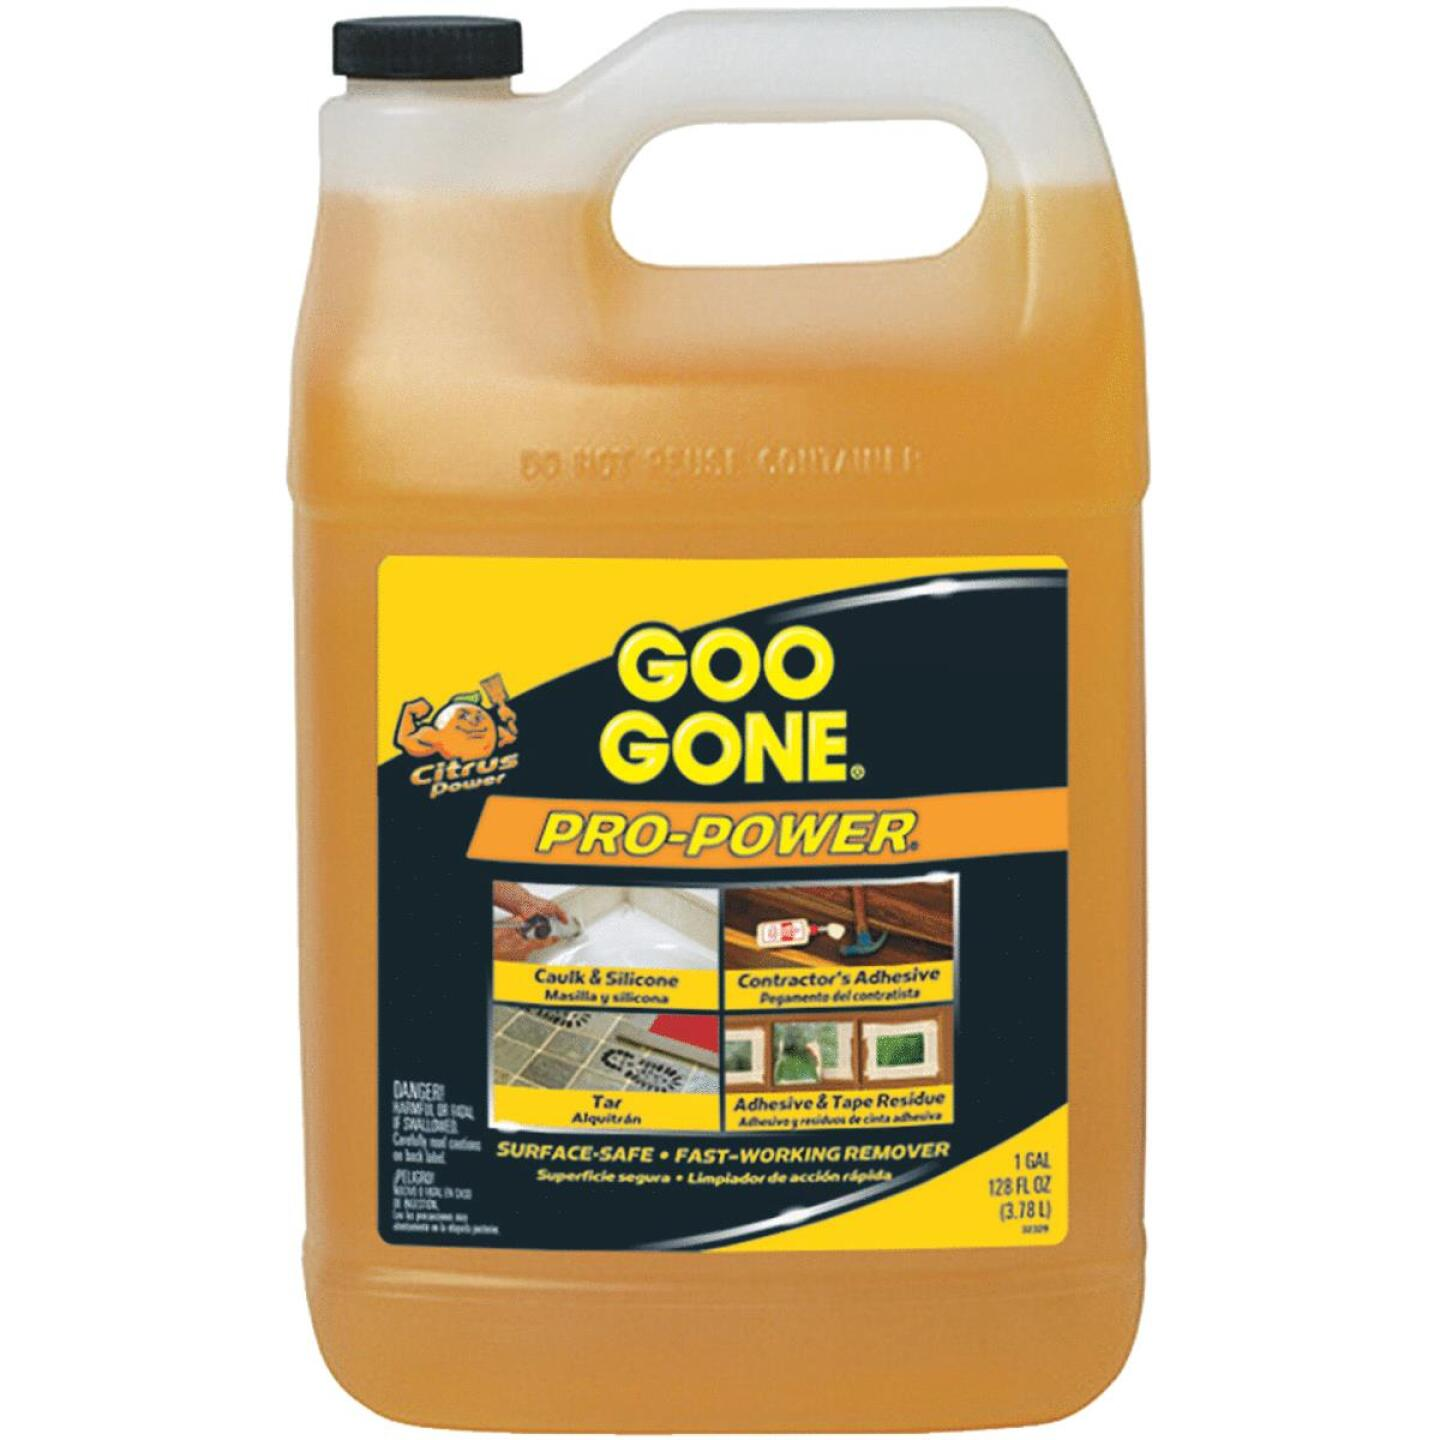 Goo Gone 1 Gal. Pro-Power Adhesive Remover Image 296